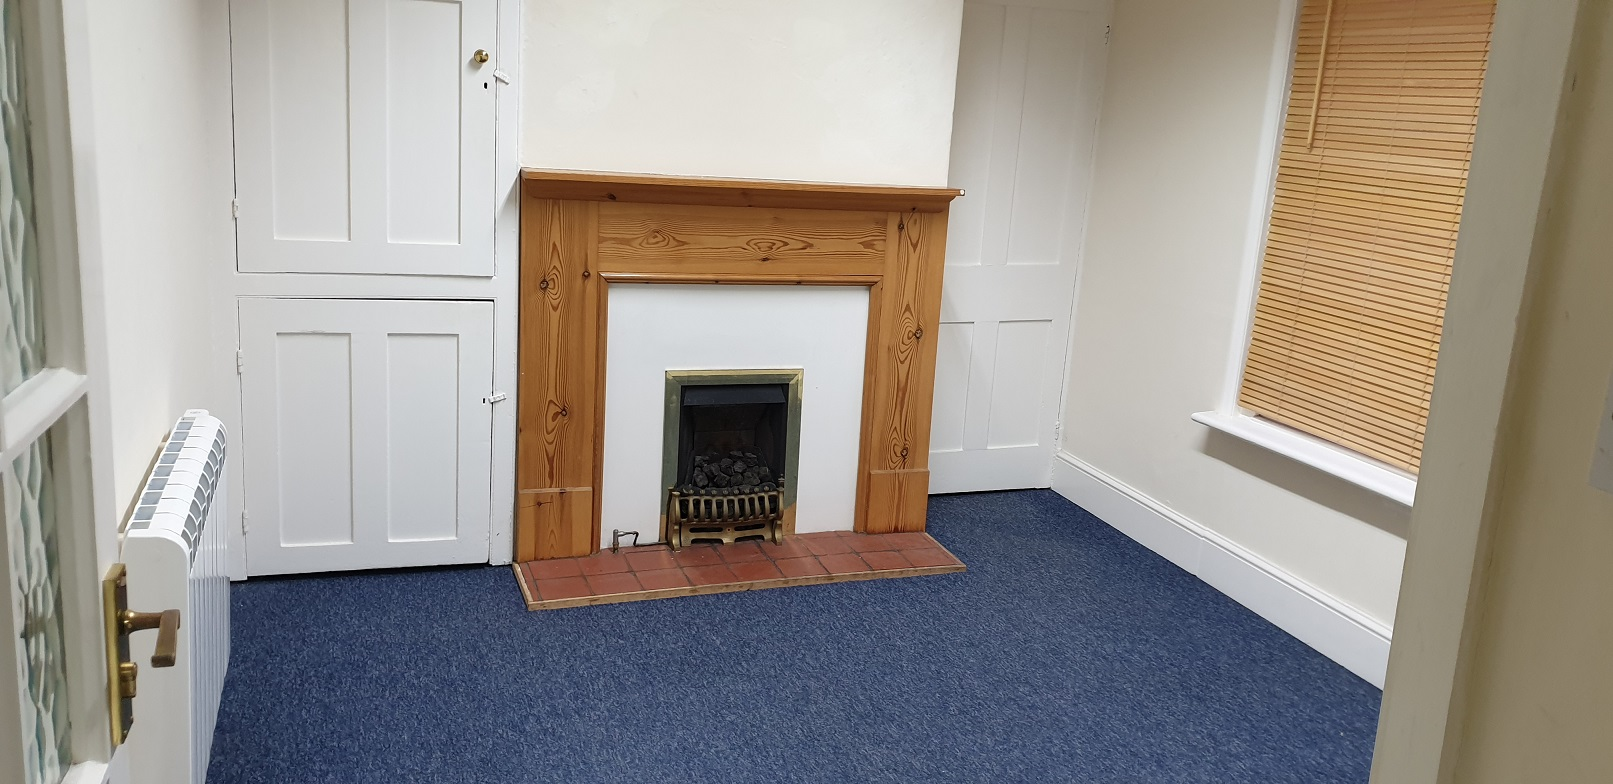 0 bed Office for rent in Whitstable. From Azure Property Consultants